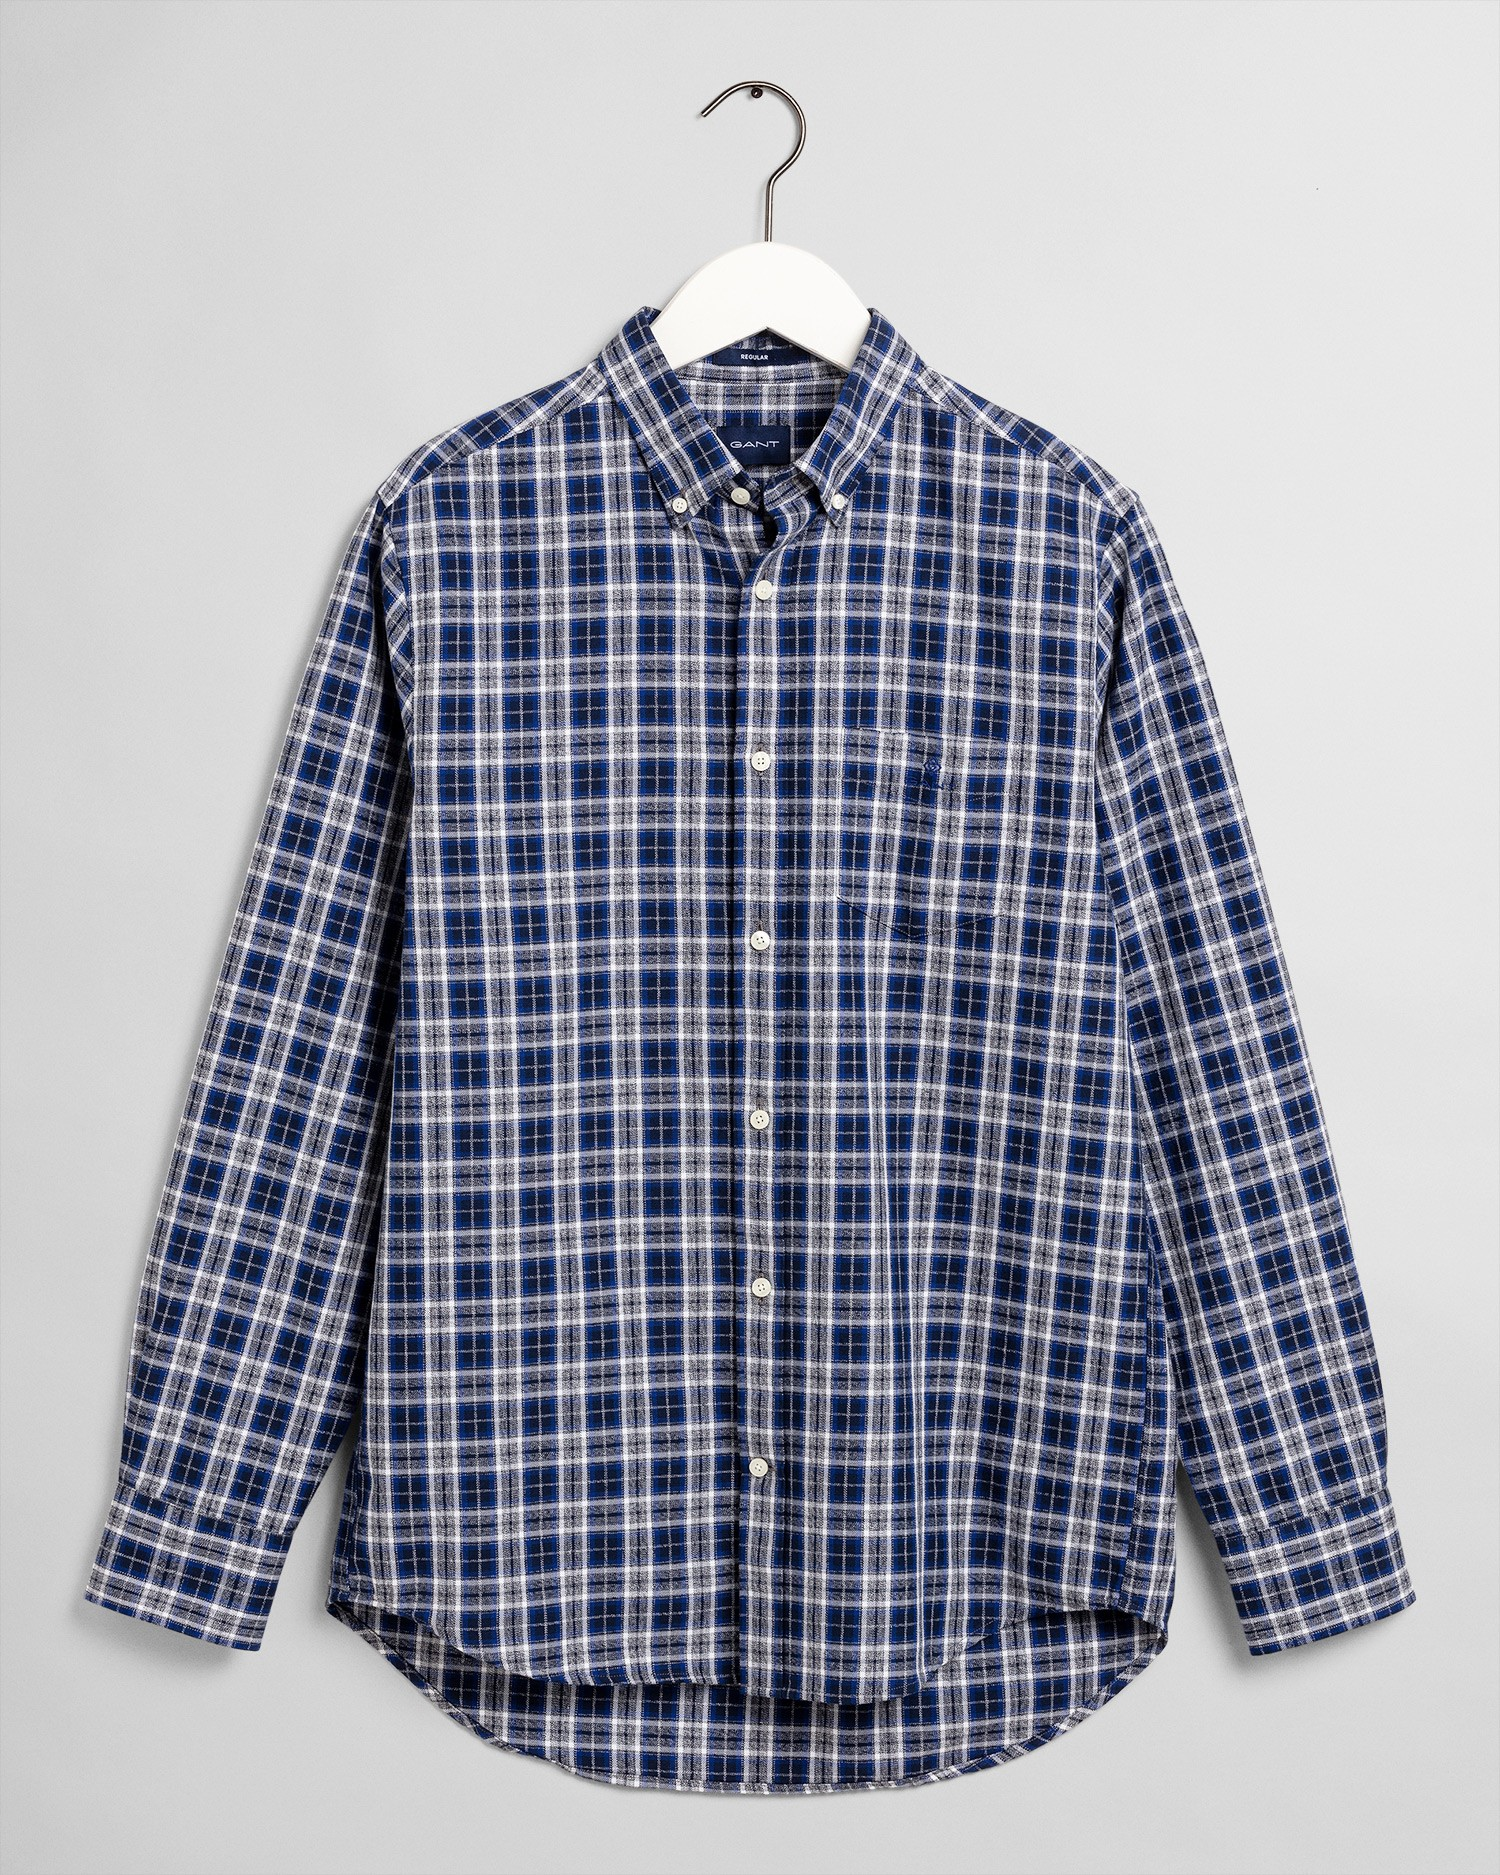 GANT Men's Oxford Mouline Check Regular Fit Broadcloth Shirts - 3008970